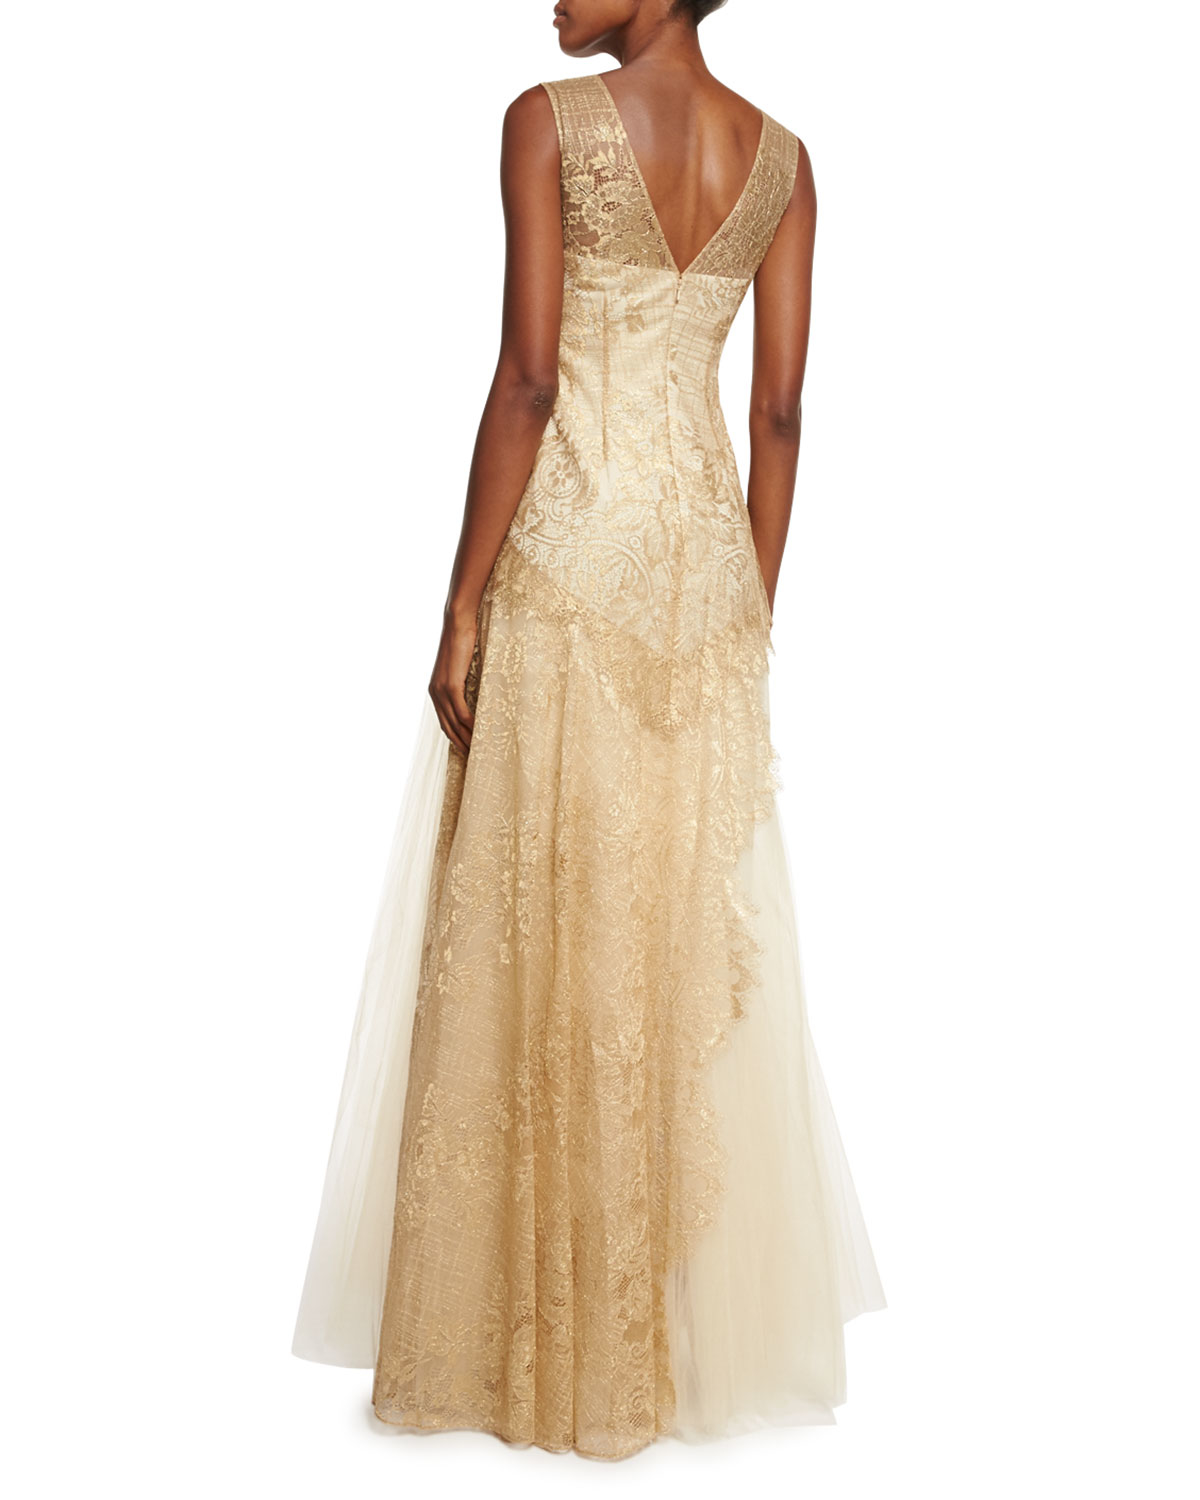 Notte by marchesa Sleeveless Lace bodice Tulle skirt Gown